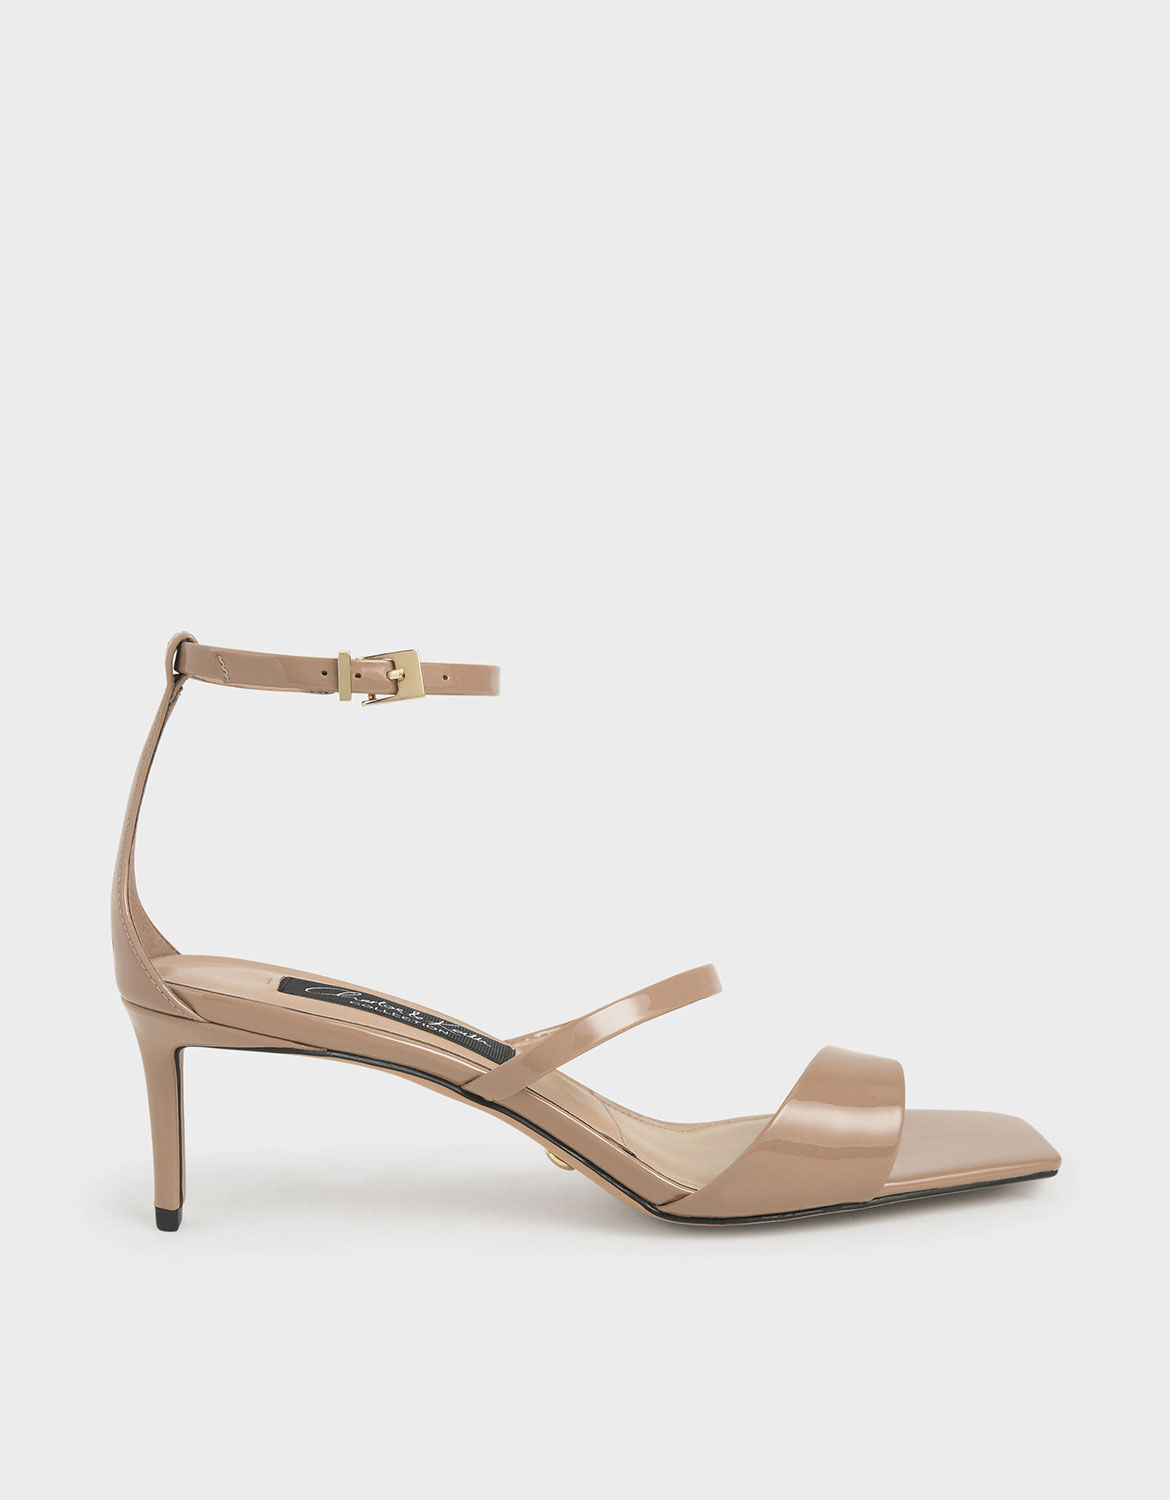 Nude Patent Leather Strappy Heeled